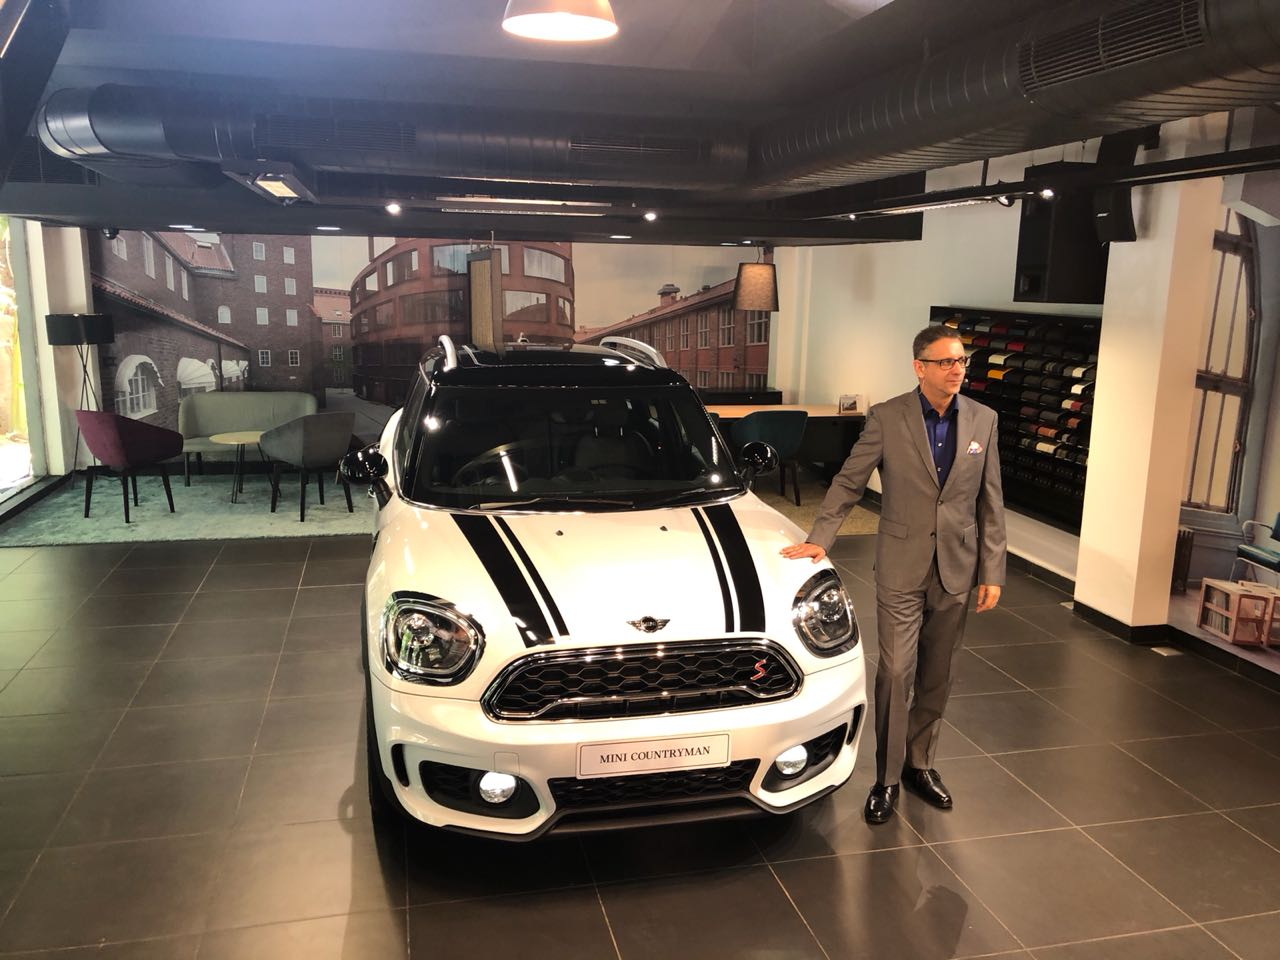 <p>The 2018 Mini Countryman has been launched in India at these prices</p>